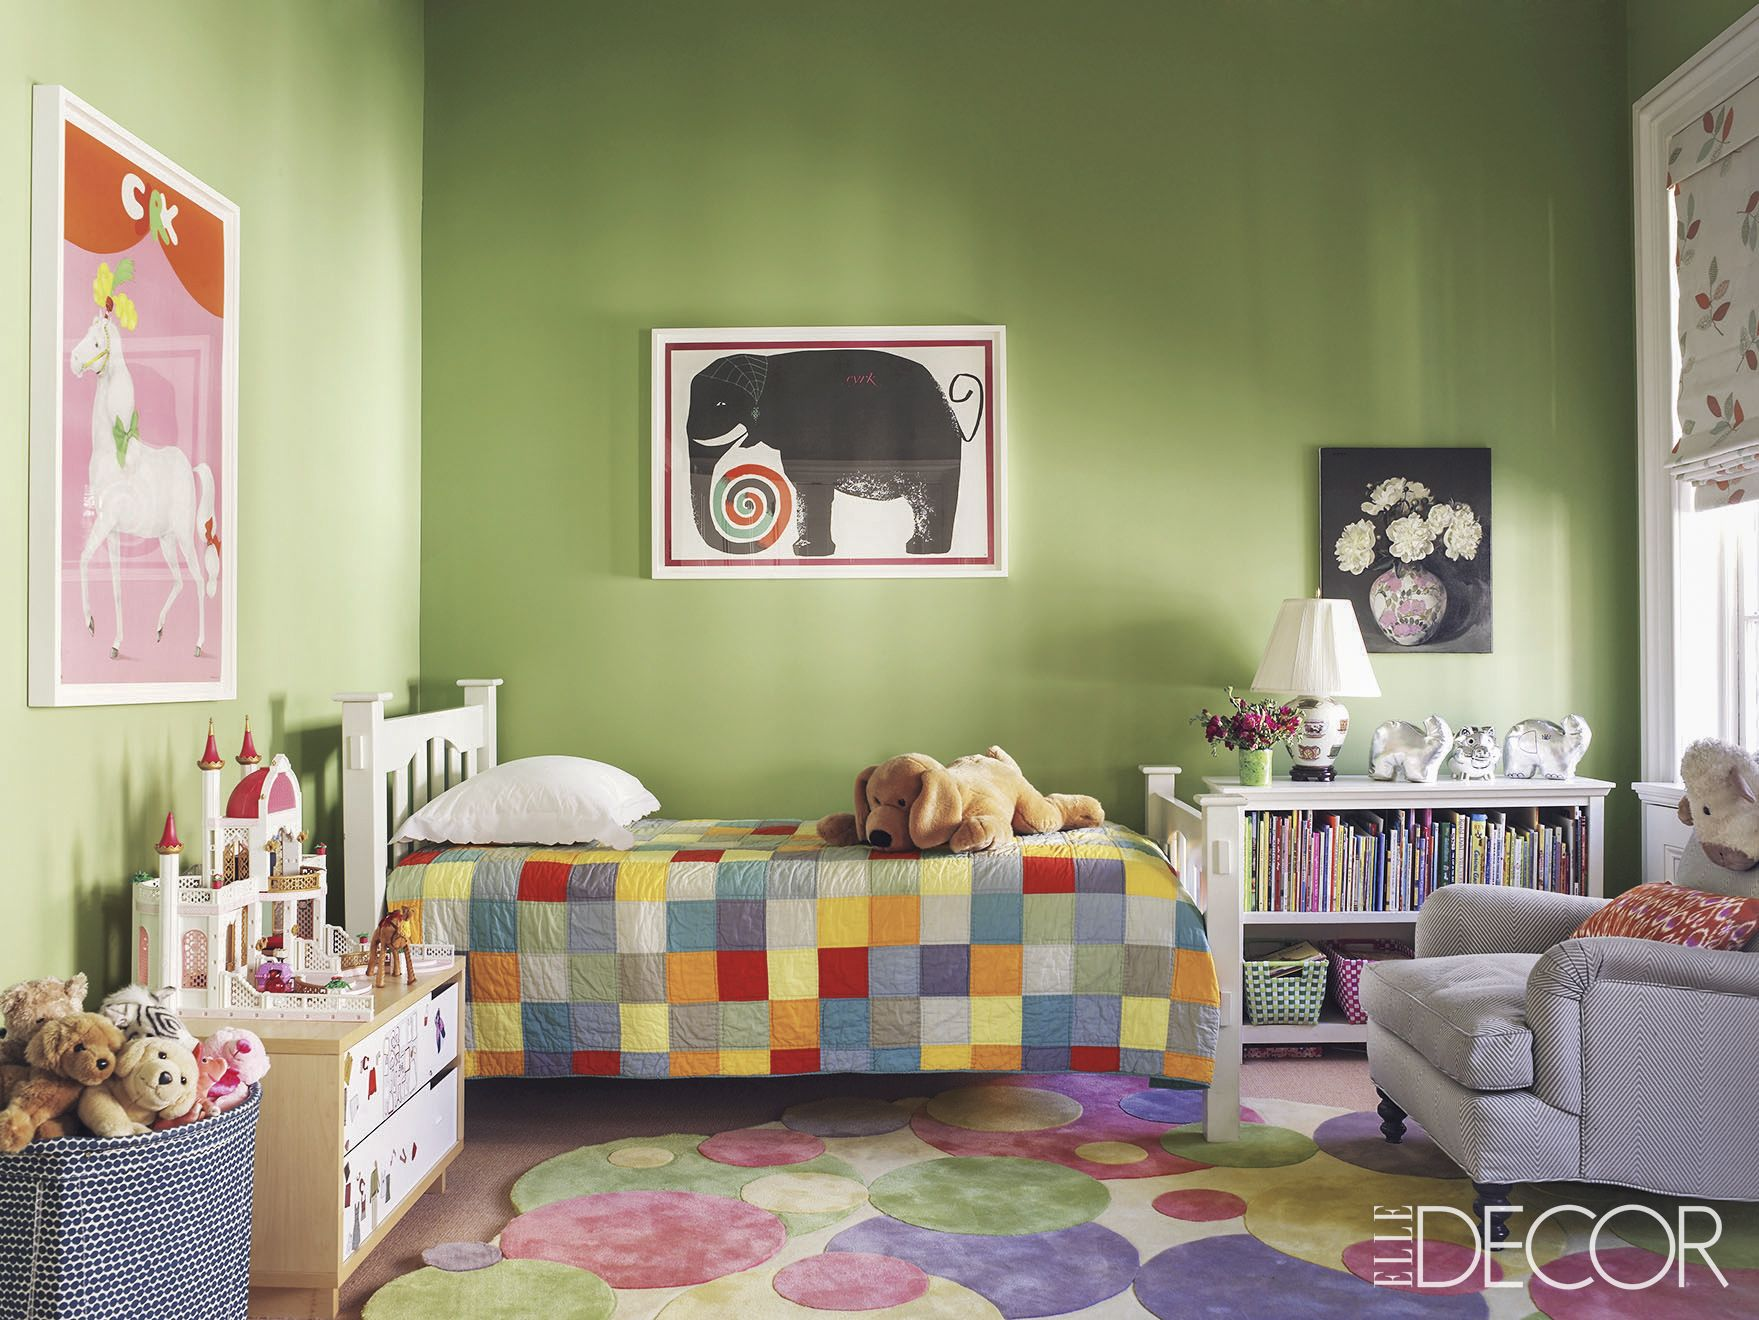 Superieur Kids Room Decorating Ideas